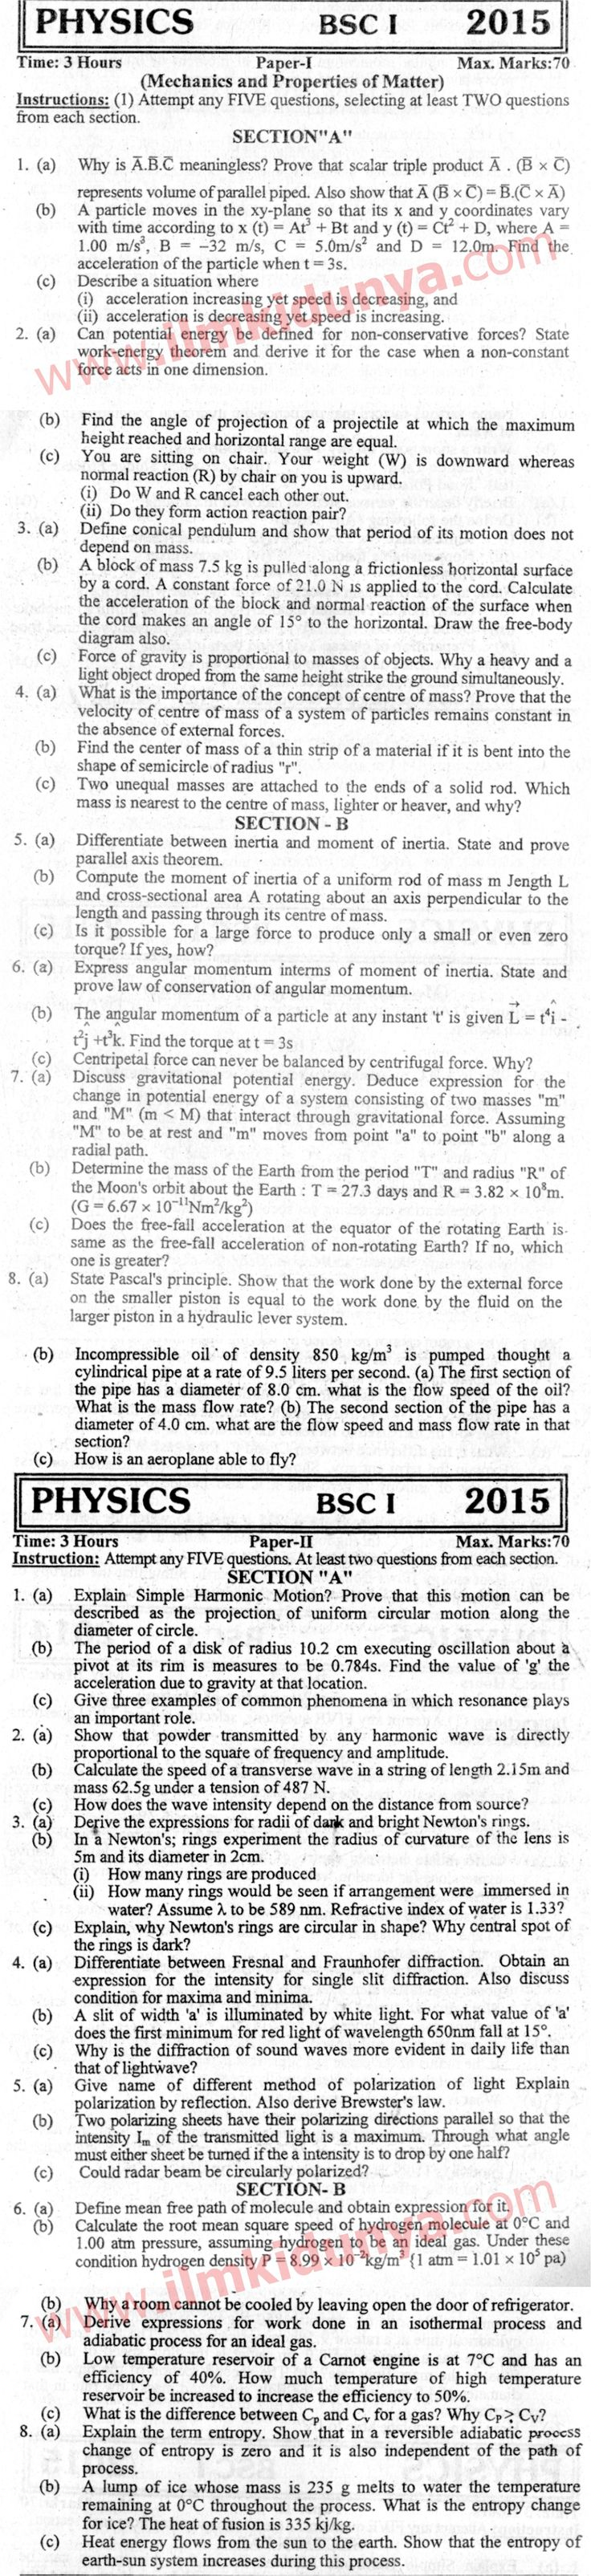 Past Papers 2015 Karachi University BSc Part 1 Physics English Version-Karachi University---2015